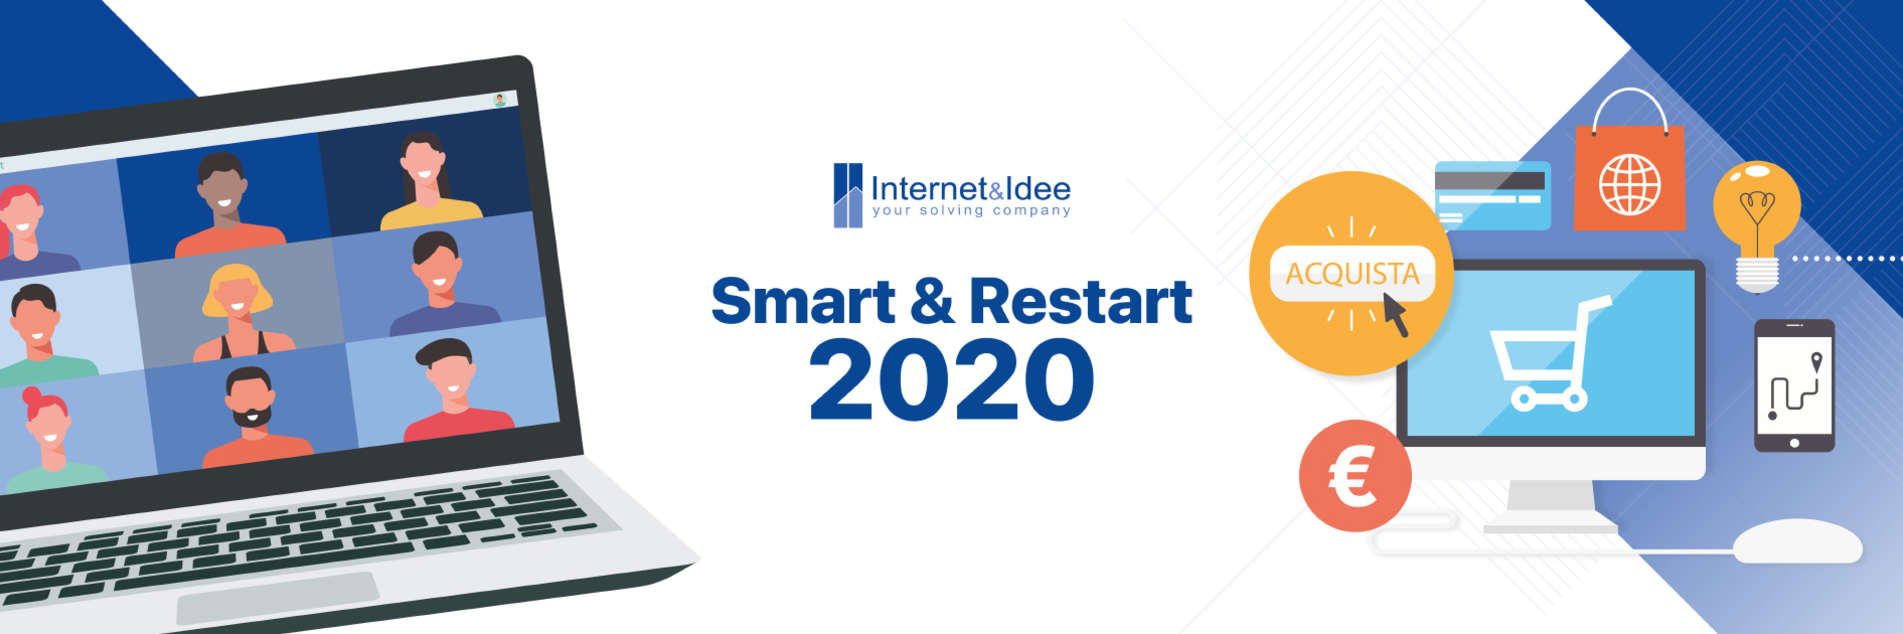 SMART & RESTART: a new challenge for I&I